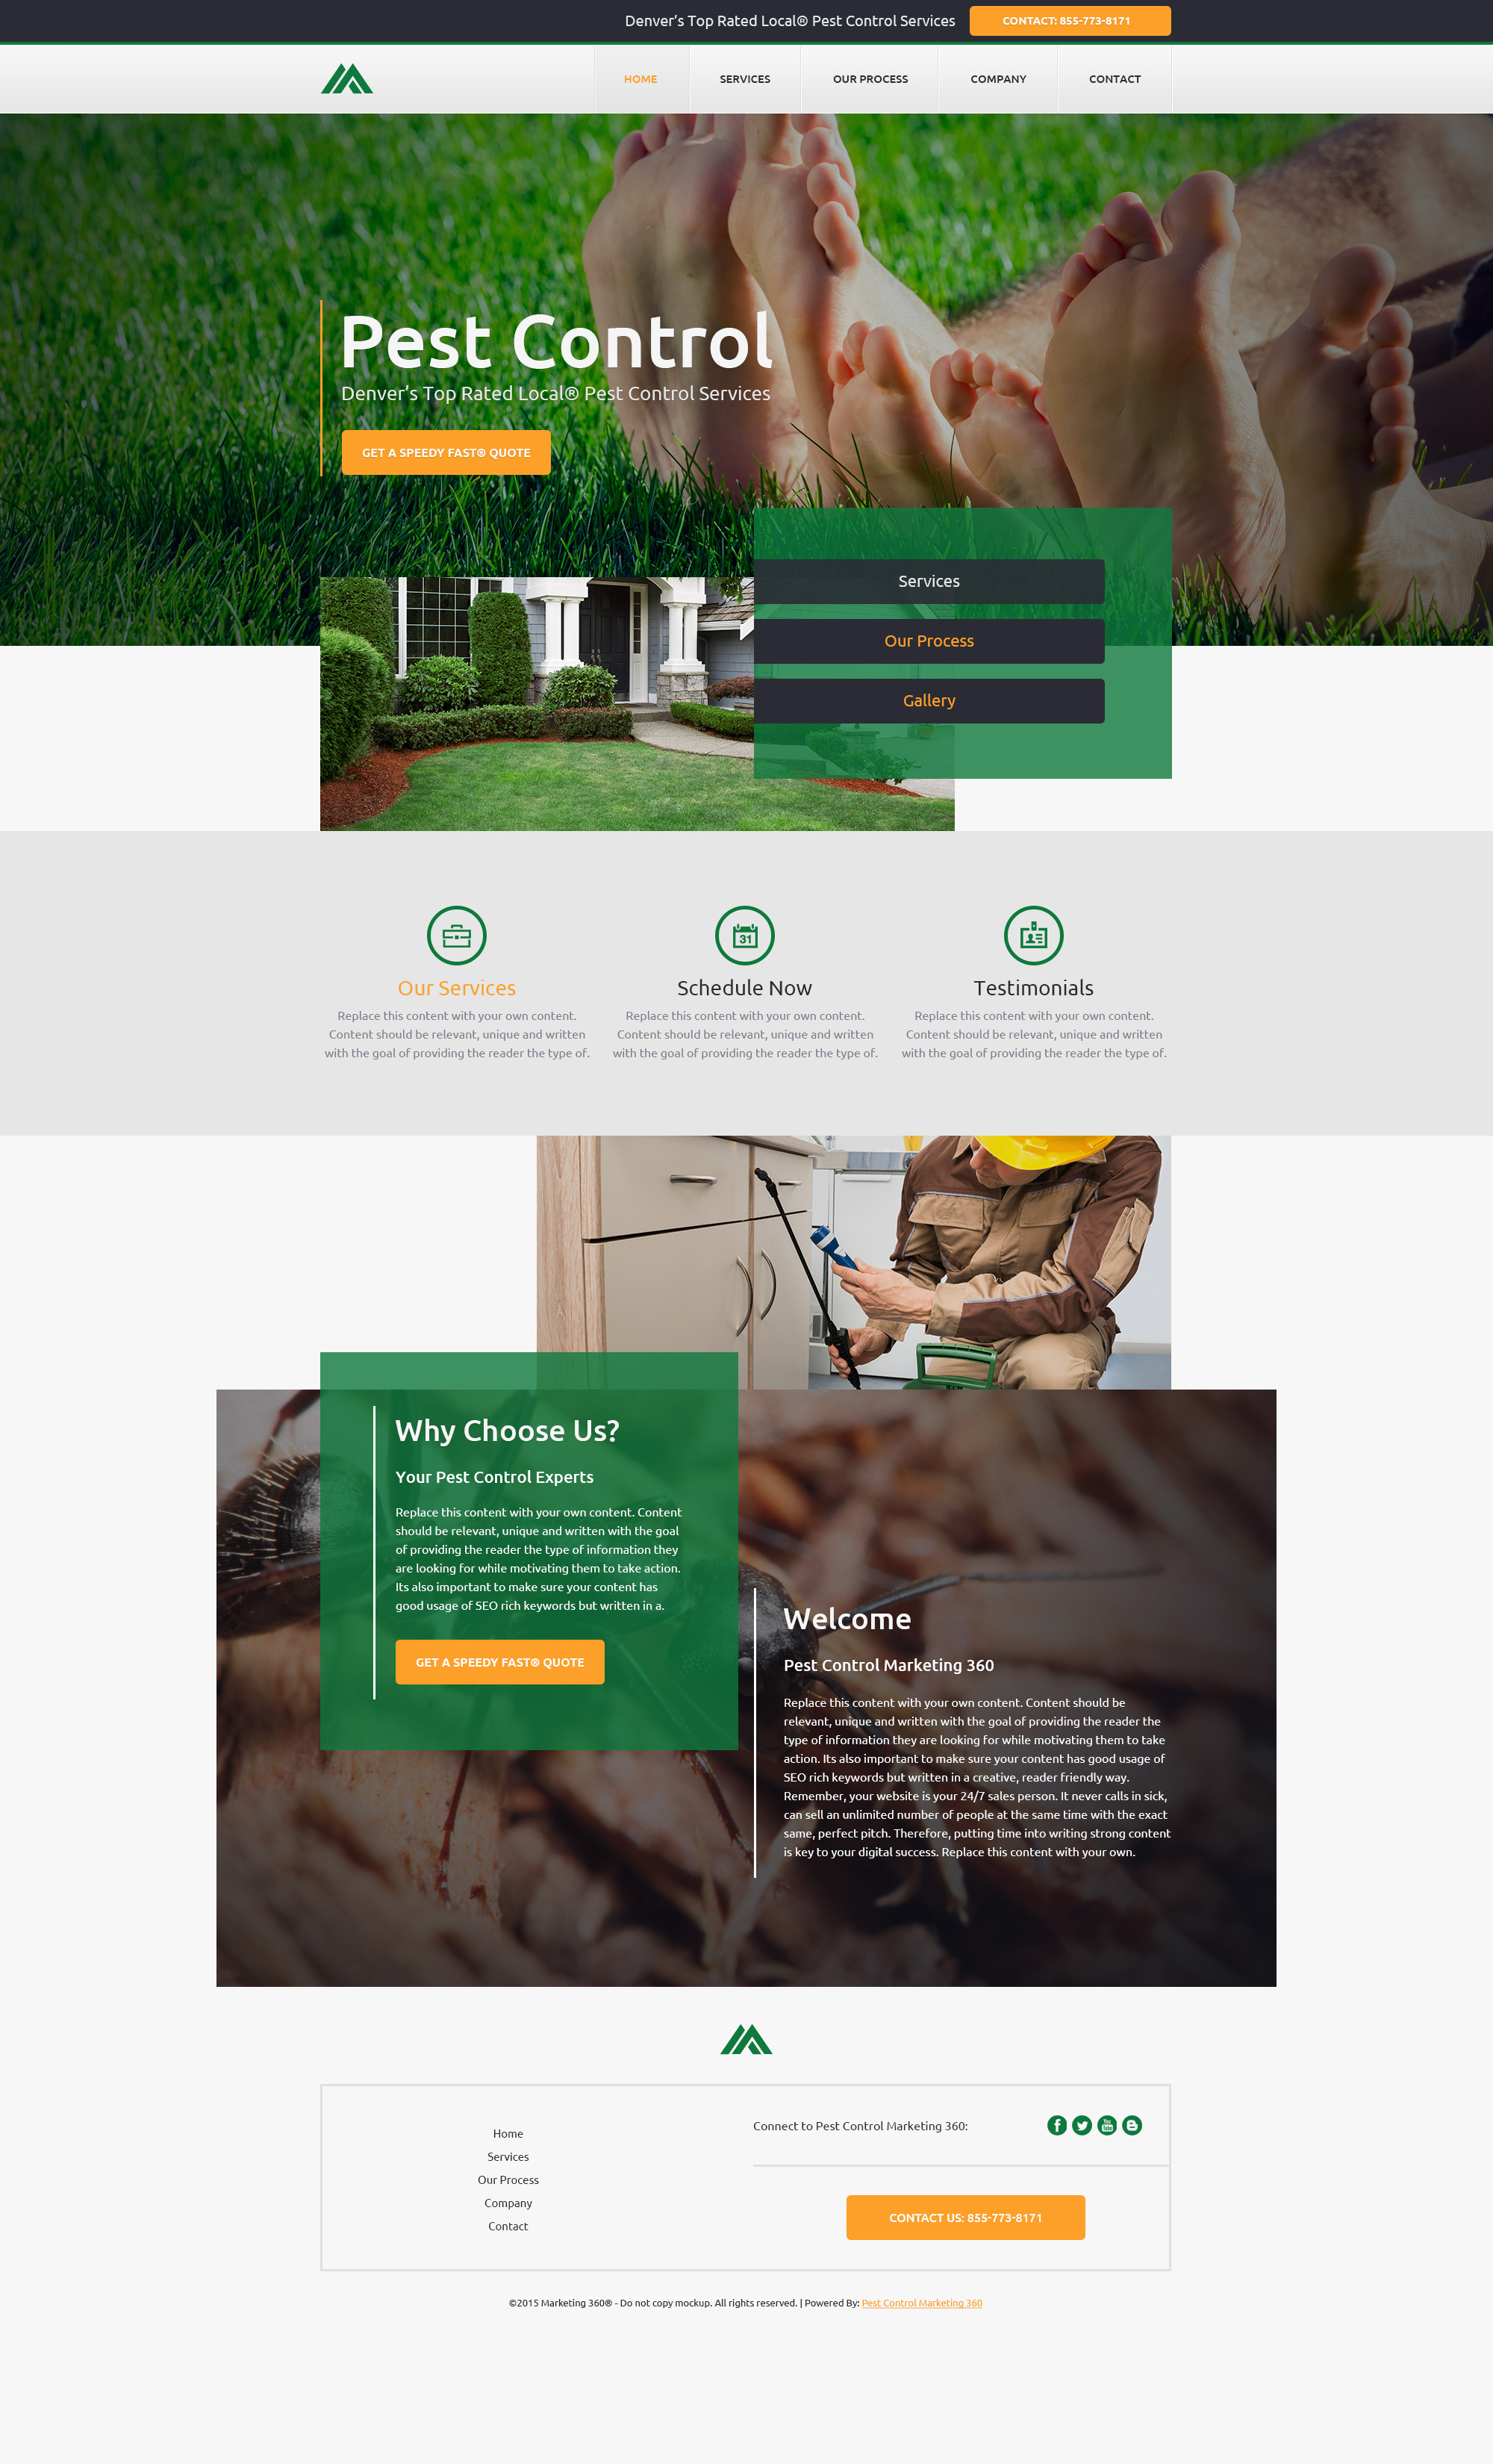 pest control website templates mobile responsive designs. Black Bedroom Furniture Sets. Home Design Ideas